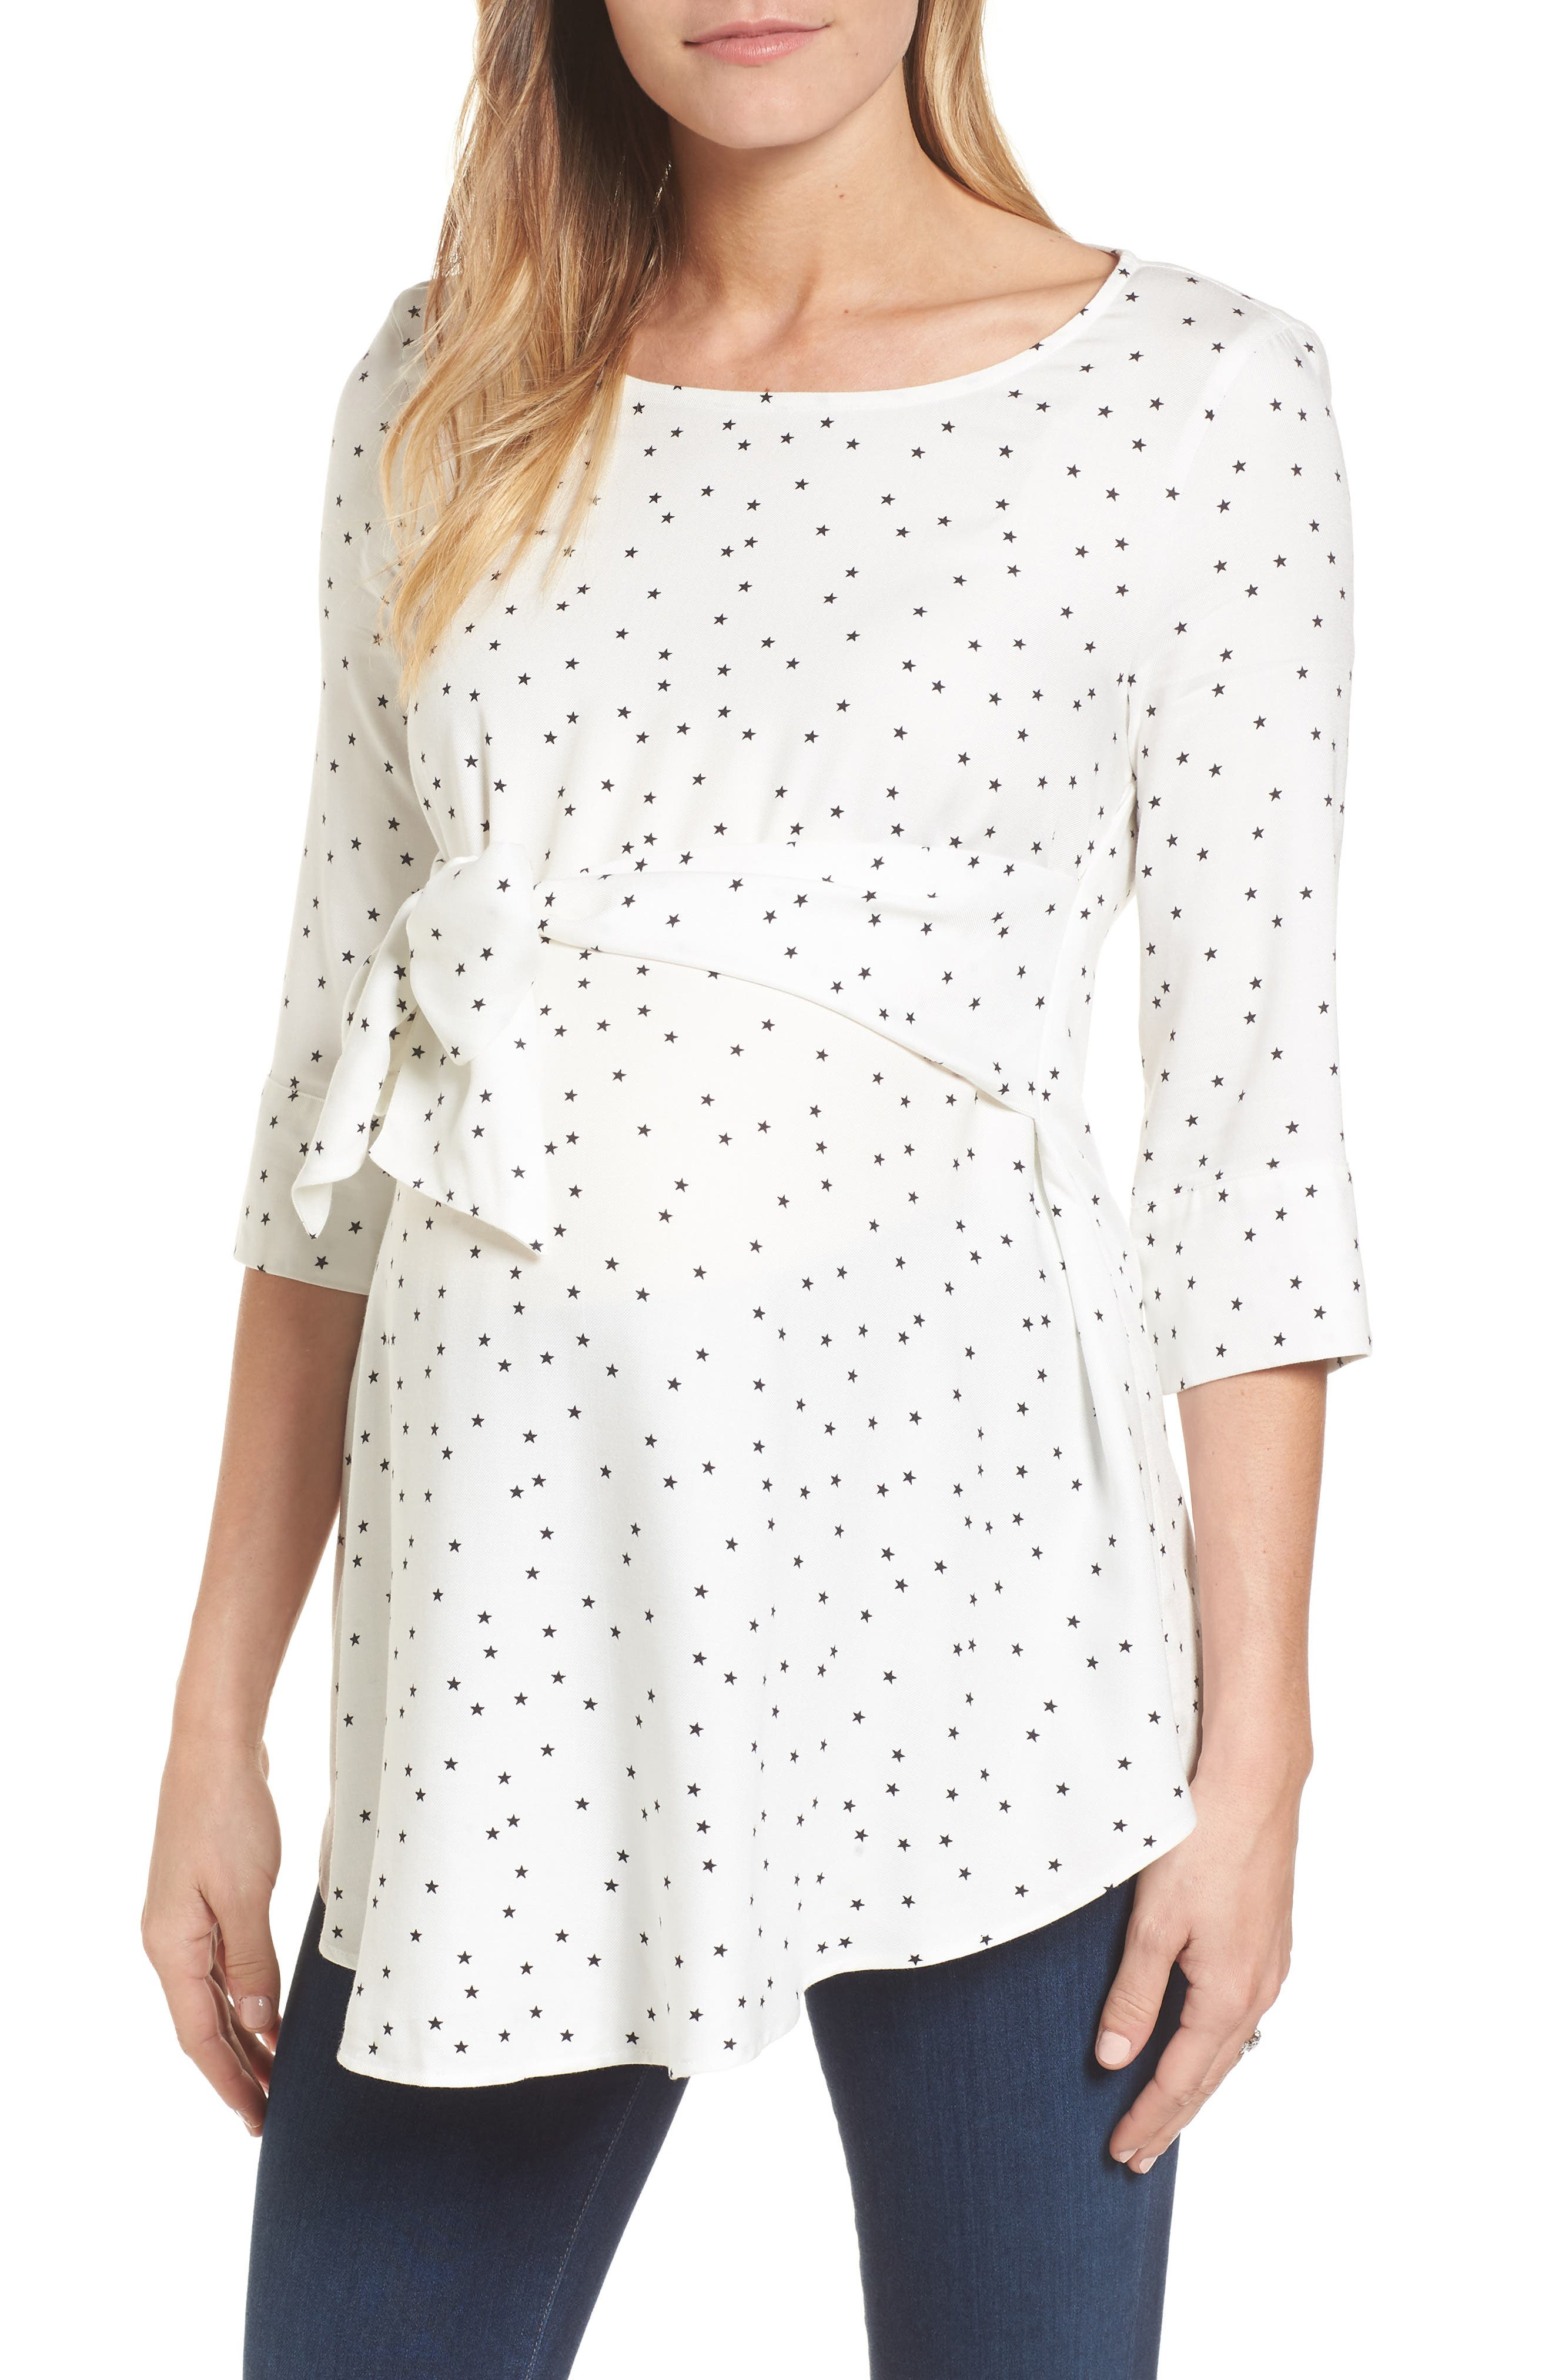 ISABELLA OLIVER,                             Selina Tie Front Maternity Top,                             Main thumbnail 1, color,                             OFF WHITE STAR PRINT